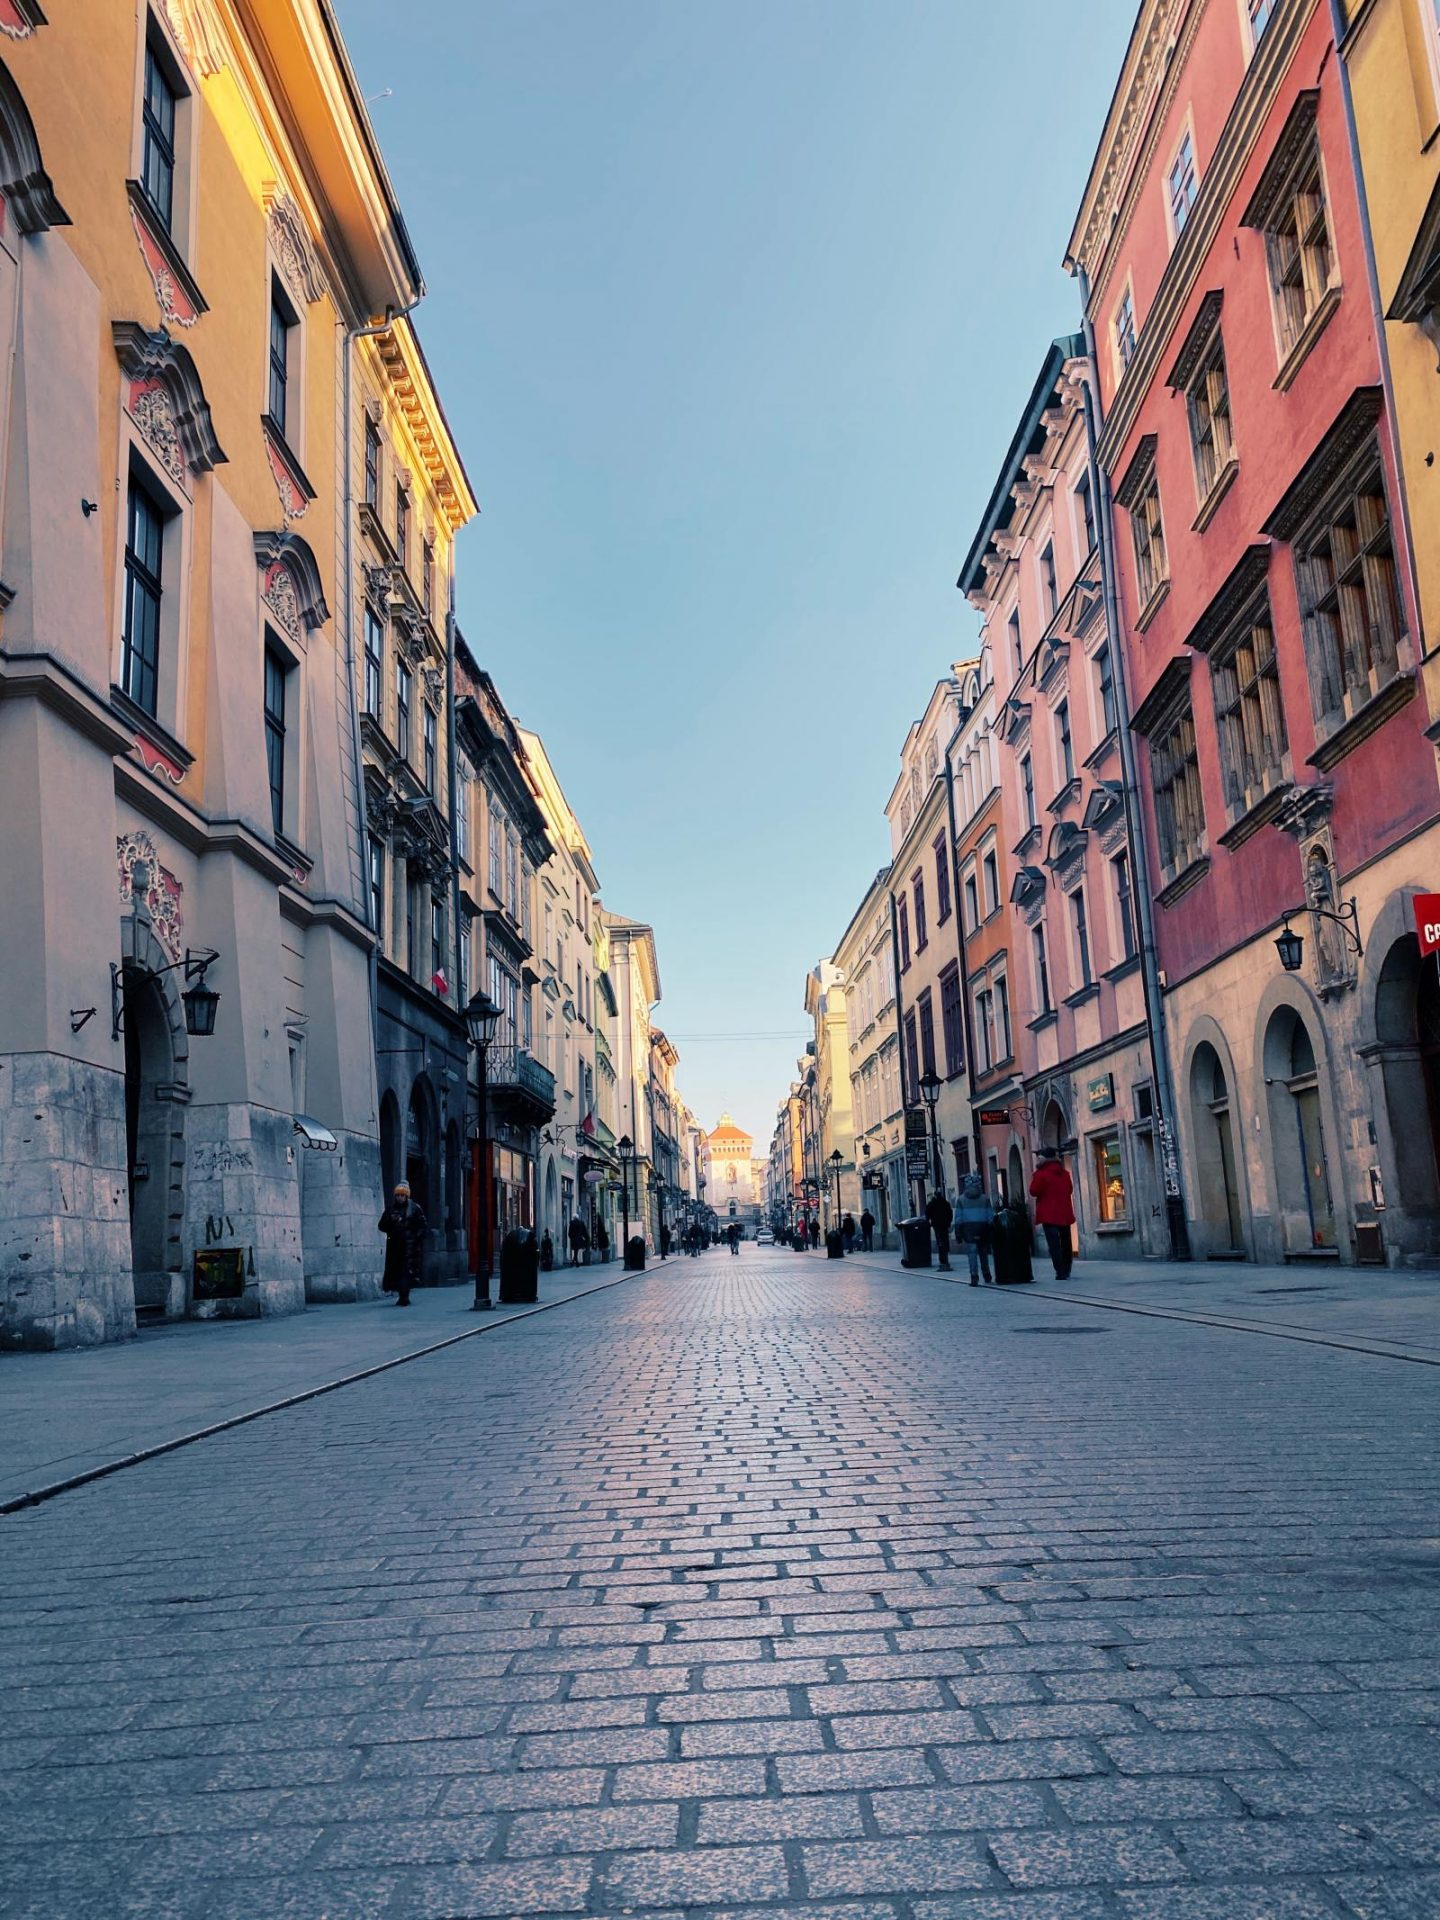 2 nights in Krakow - florianska street